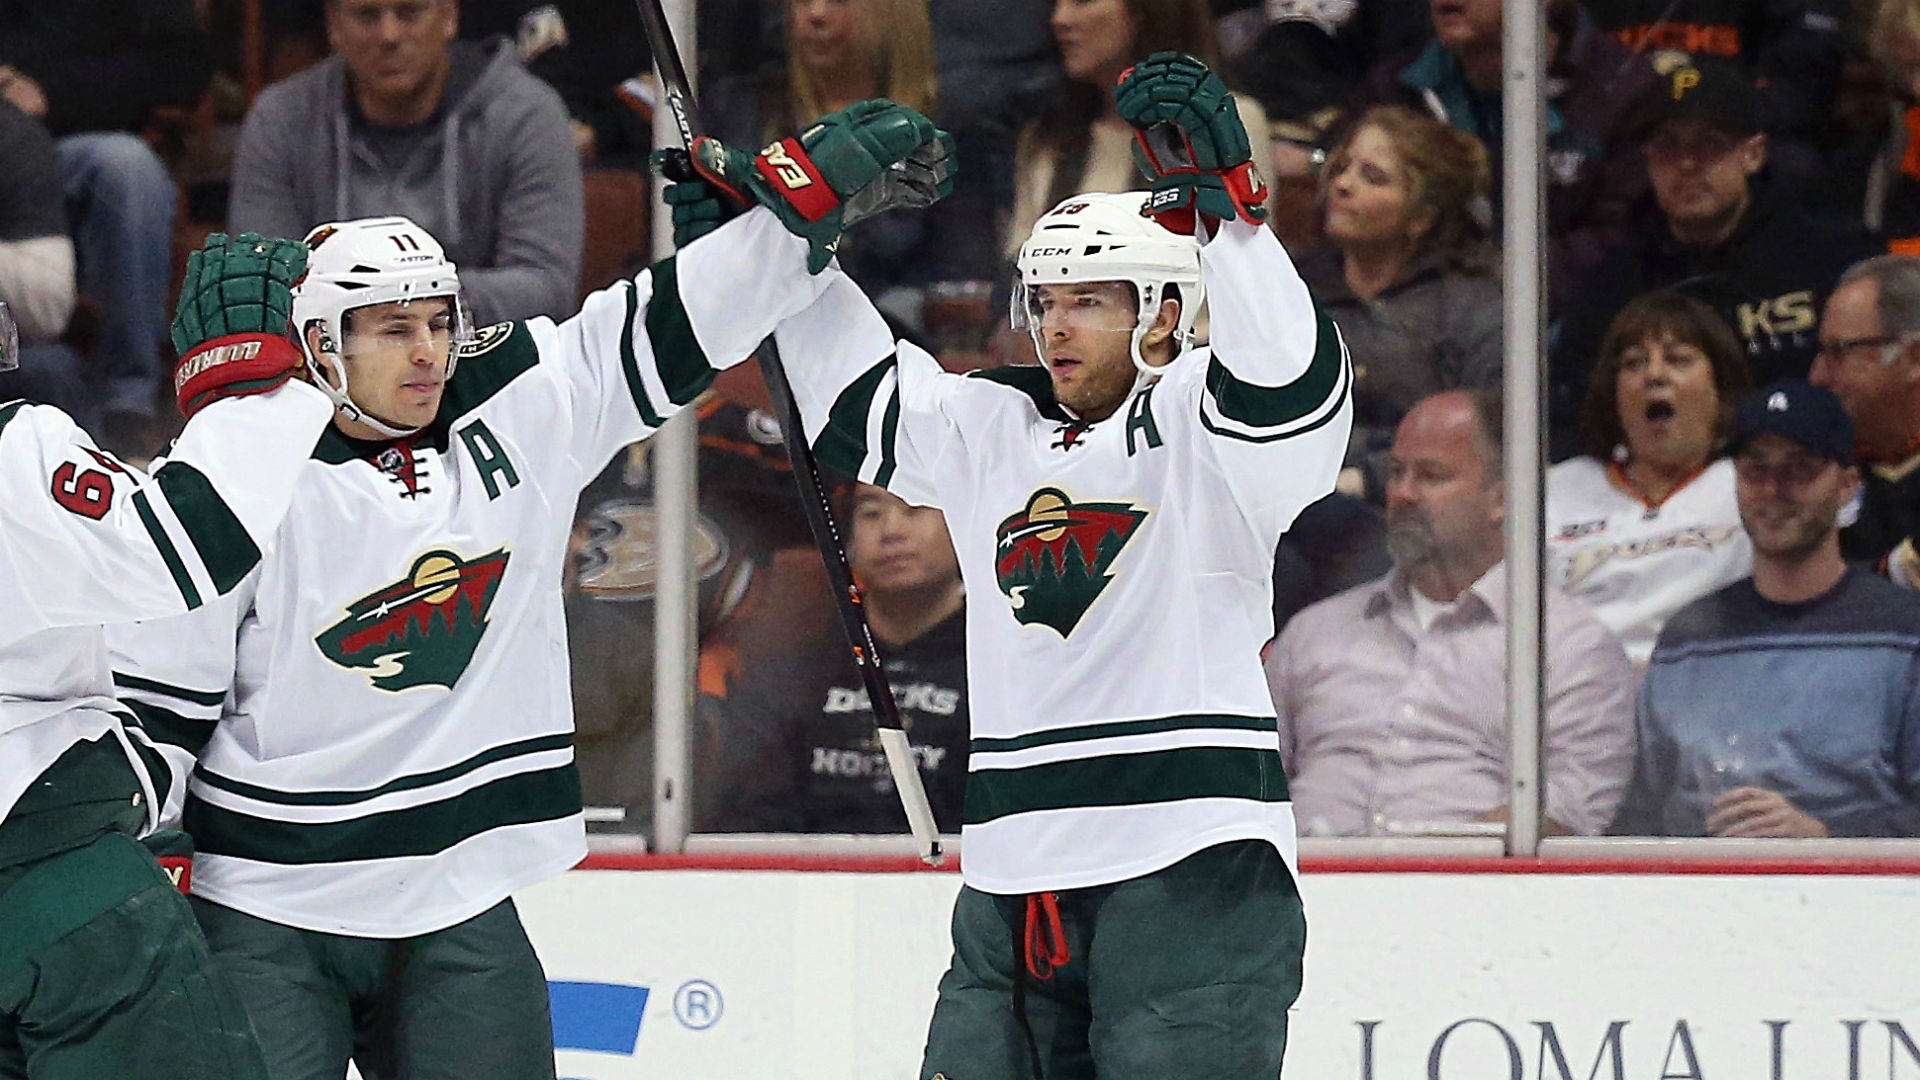 Wild's Parise, Pominville Diagnosed With Mumps